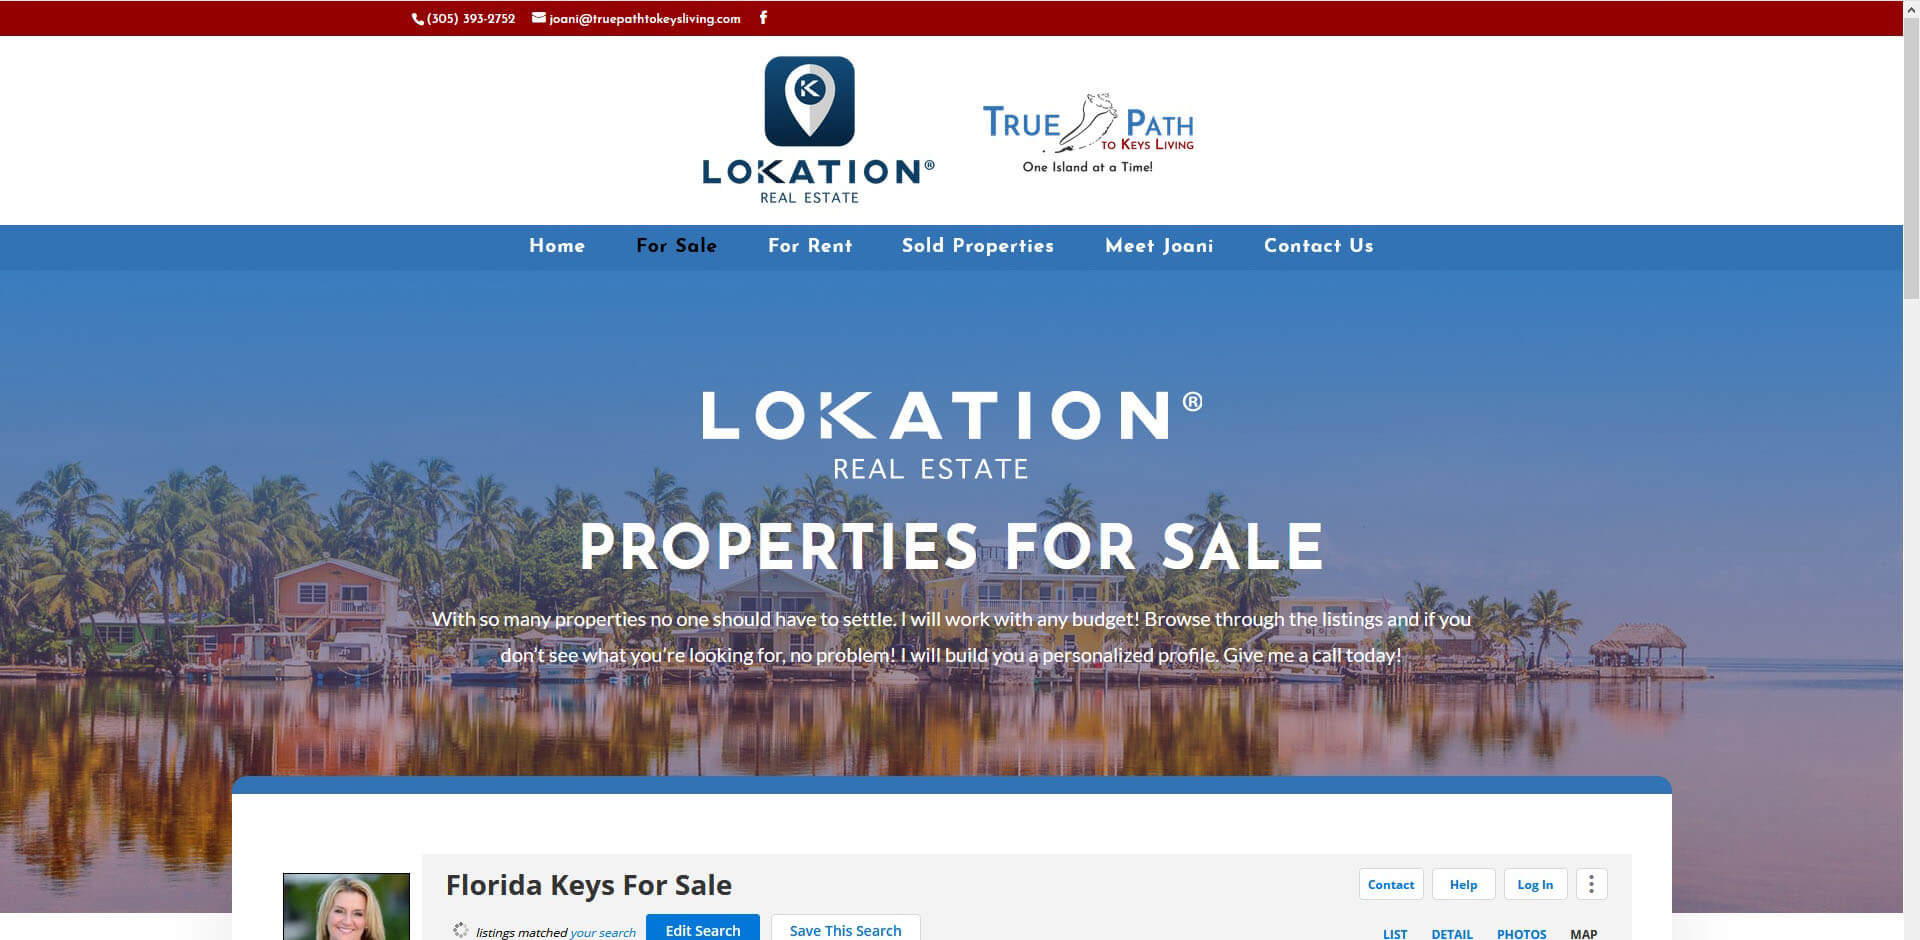 An image of the Properties for Sale page of True Path to Keys Living, website created by Not Fade Away Marketing